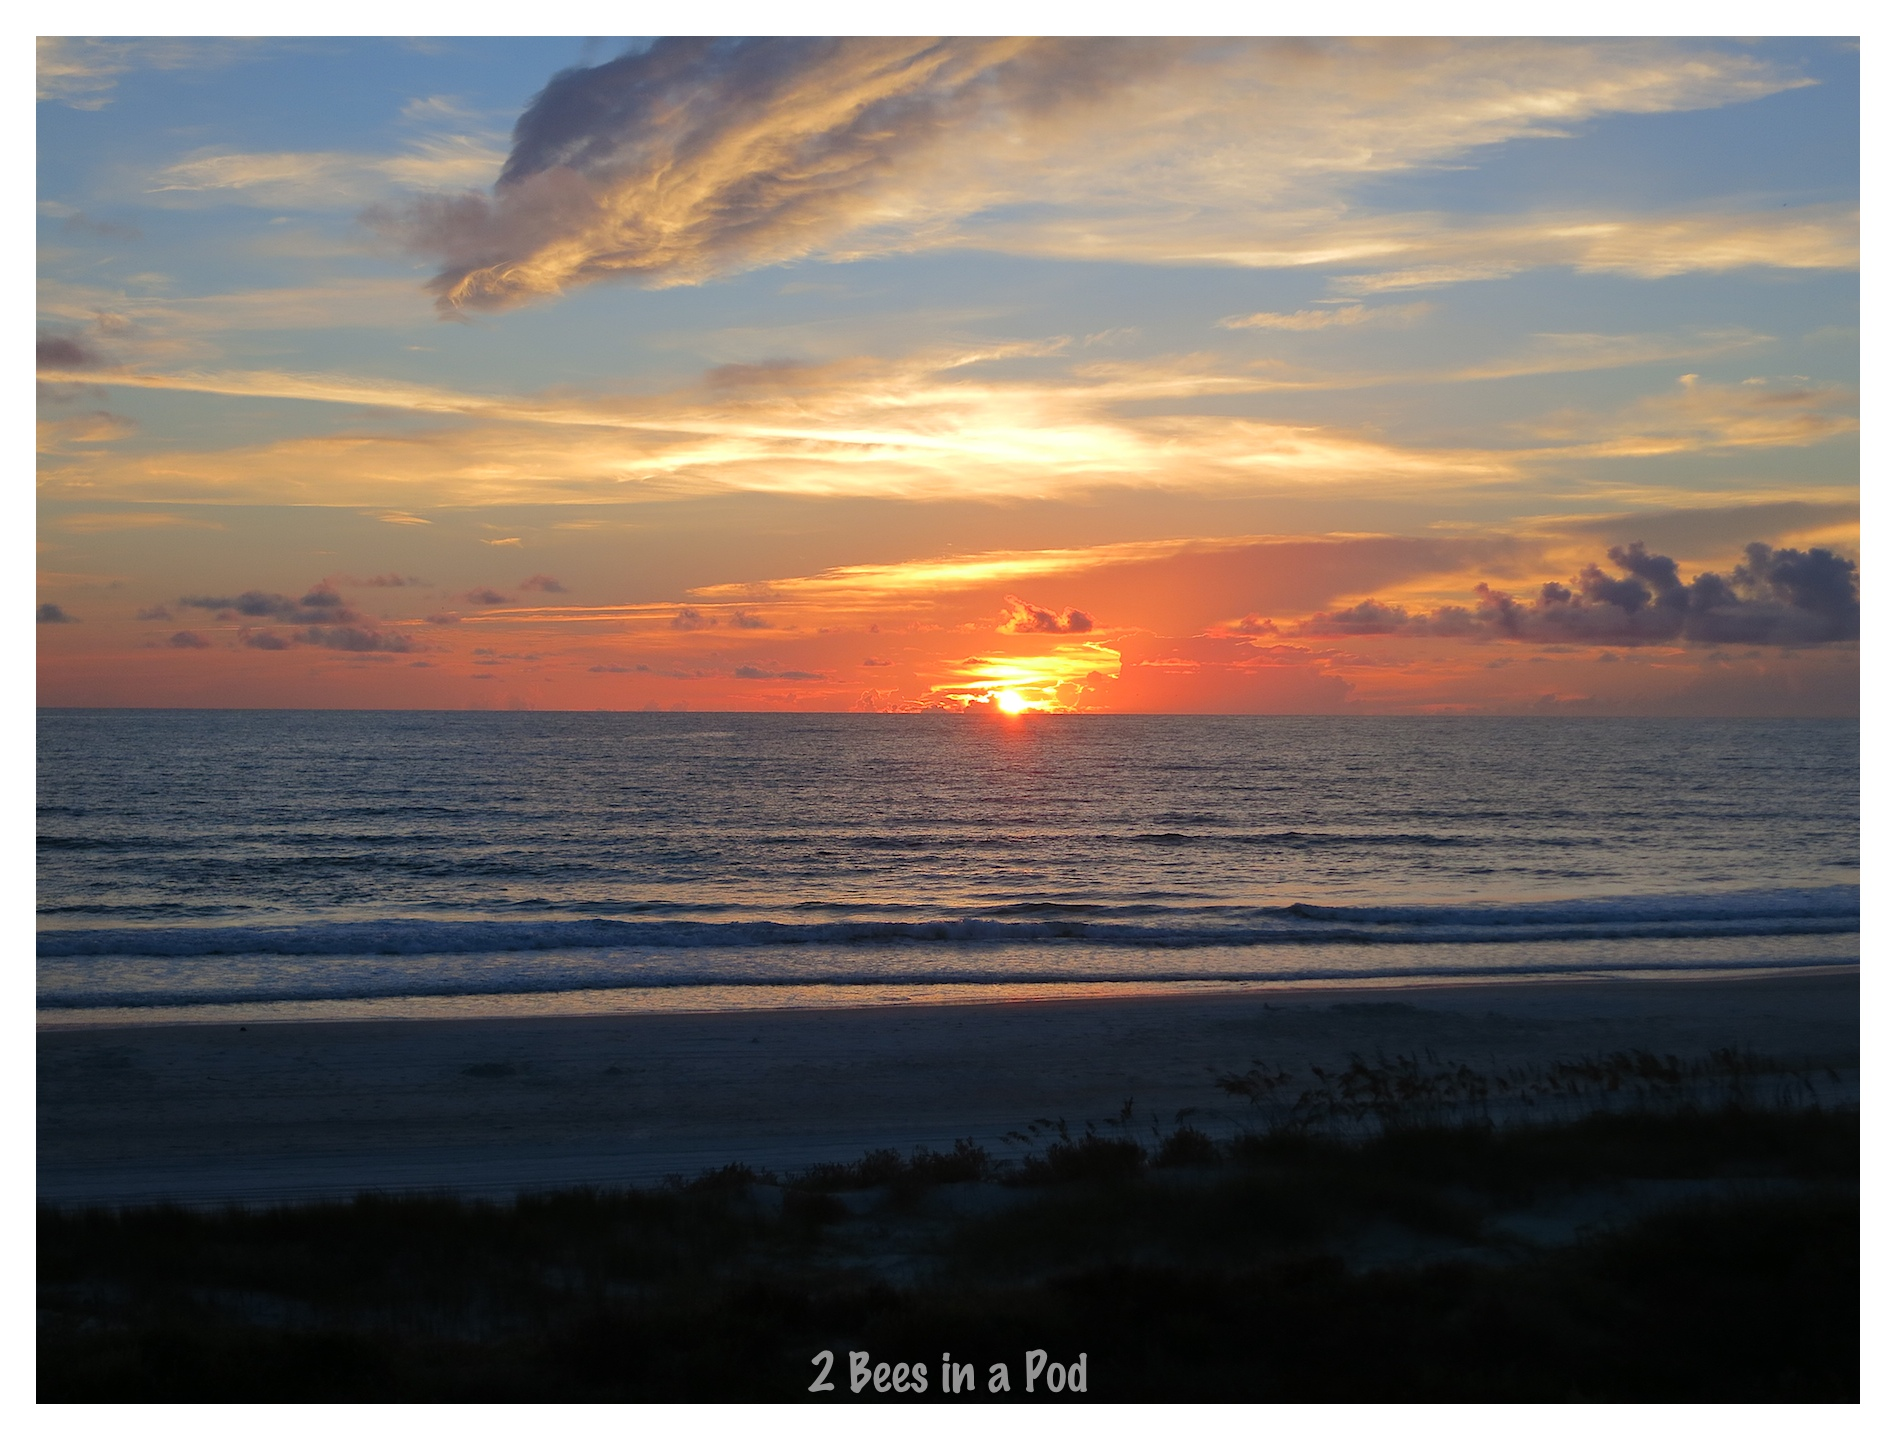 Daily sunrise from our viewpoint on Crescent Beach, Florida